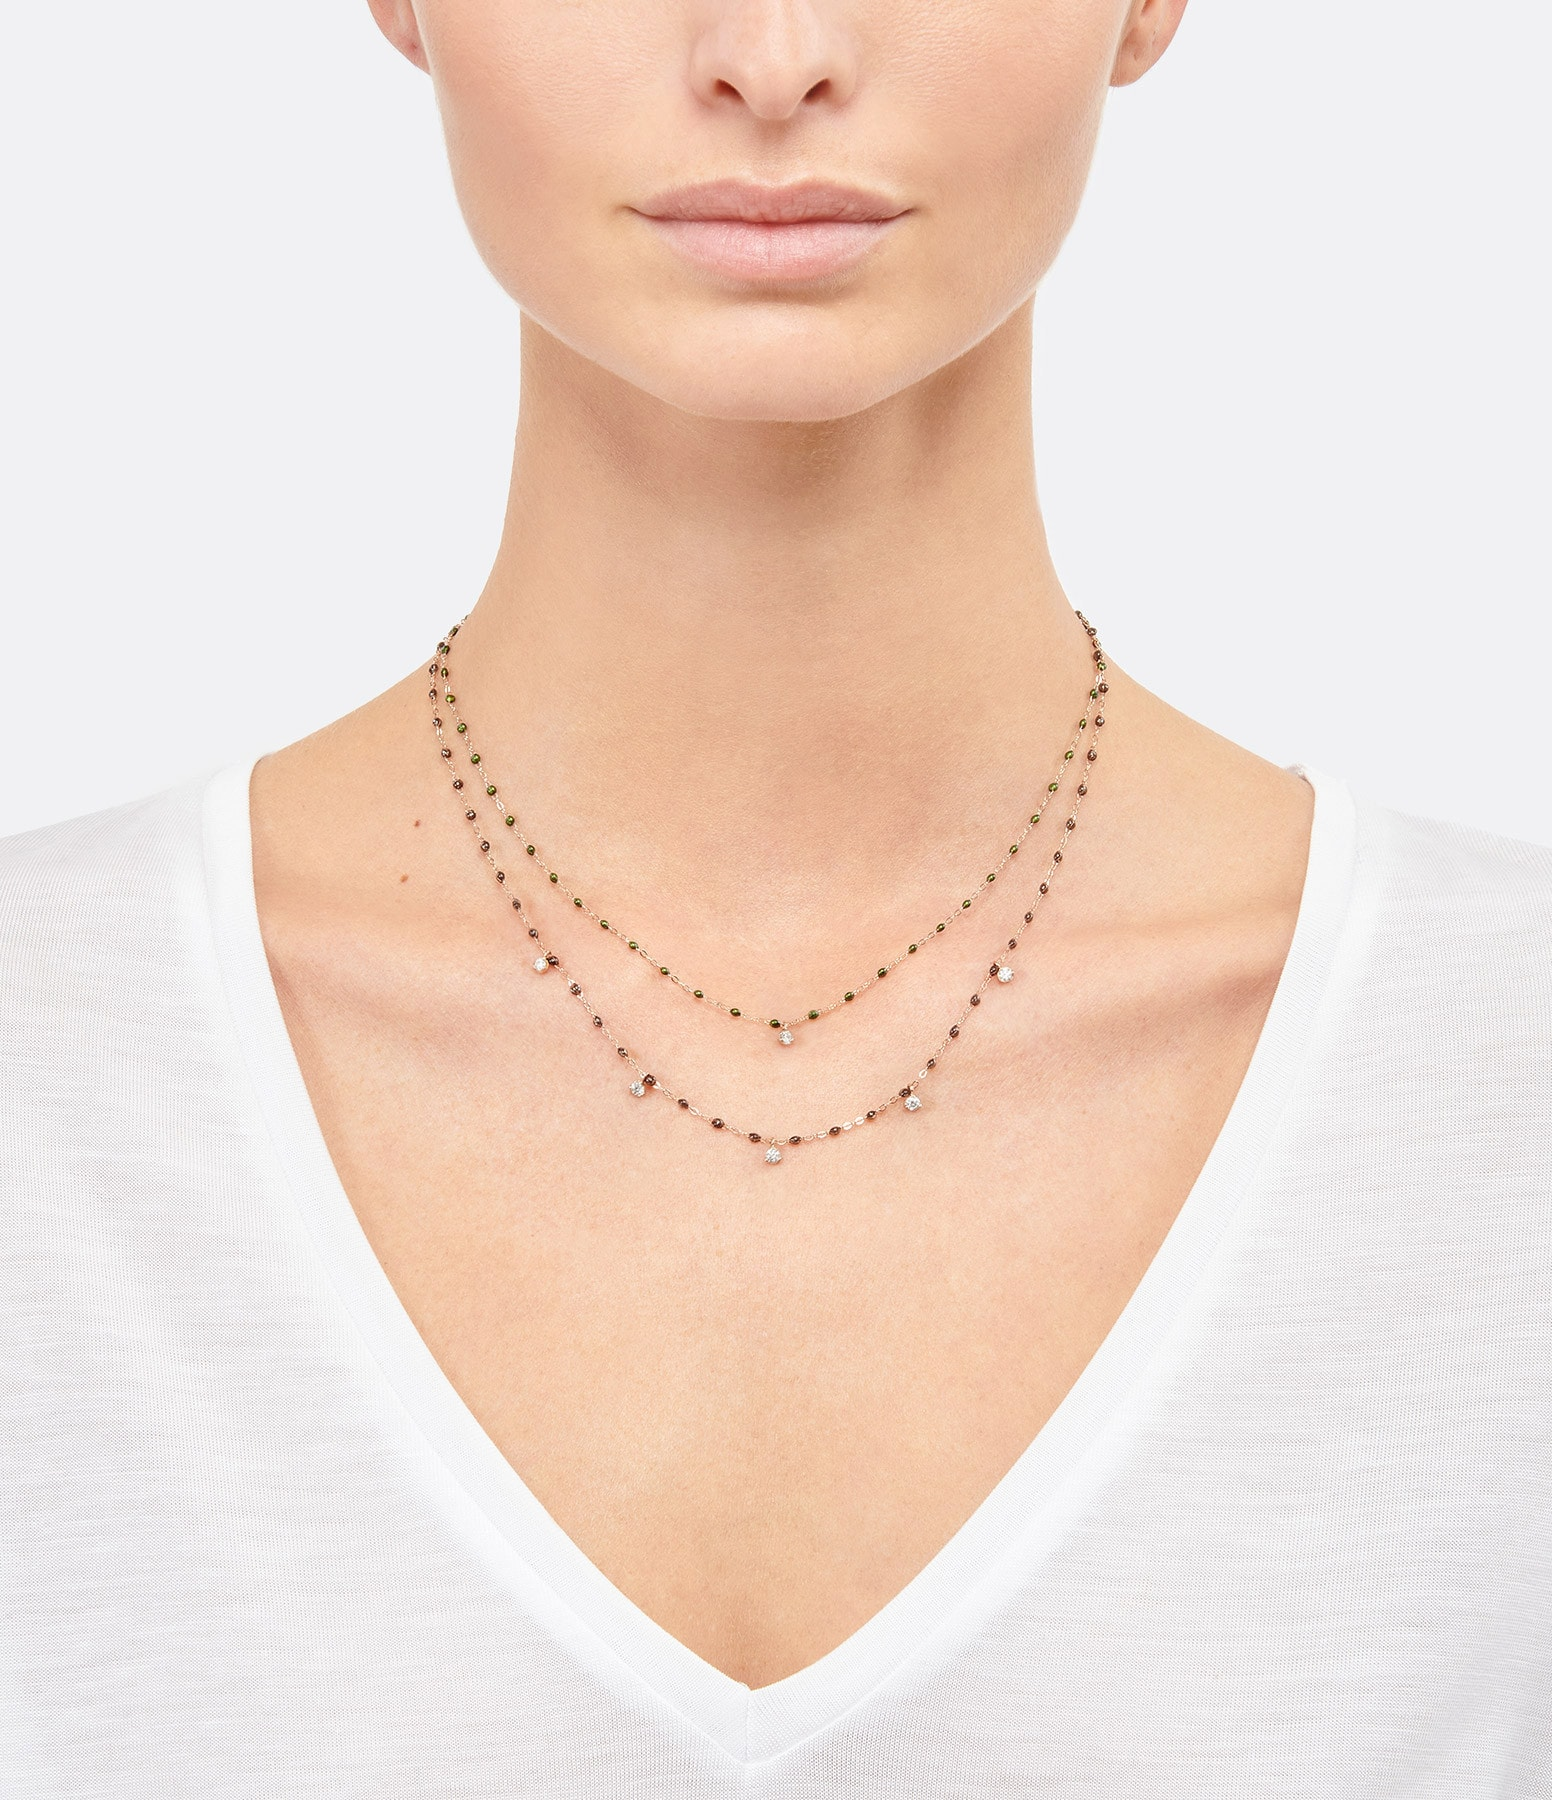 GIGI CLOZEAU - Collier résine Gigi Suprême 5 Diamants Or rose